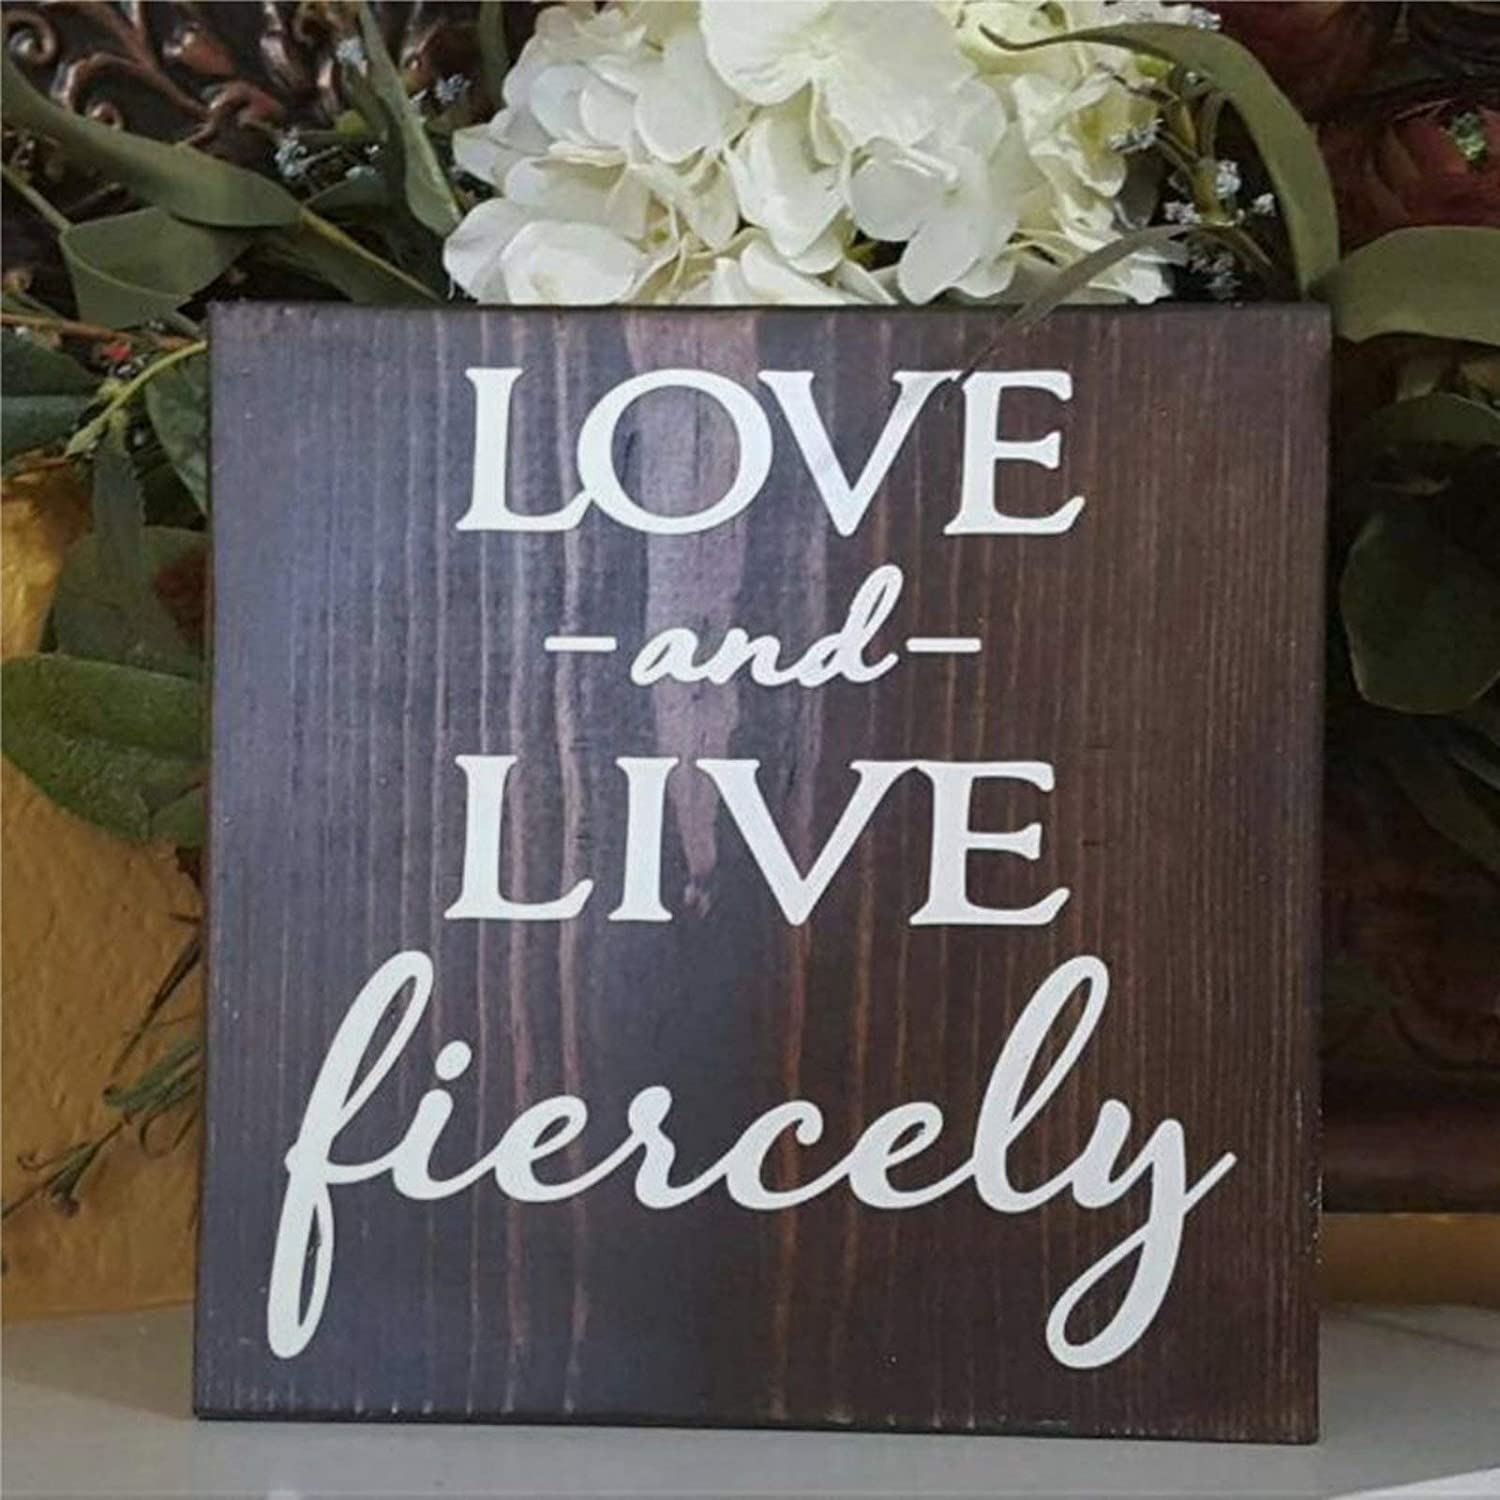 DONL9BAUER Love and Live Fiercely Wood Sign,Farmhouse Wedding Couple Rustic Inspirational Wood Wall Decor Sign, Wooden Plaque Art for Home,Gardens, Porch, Gallery Wall, Coffee Shops.